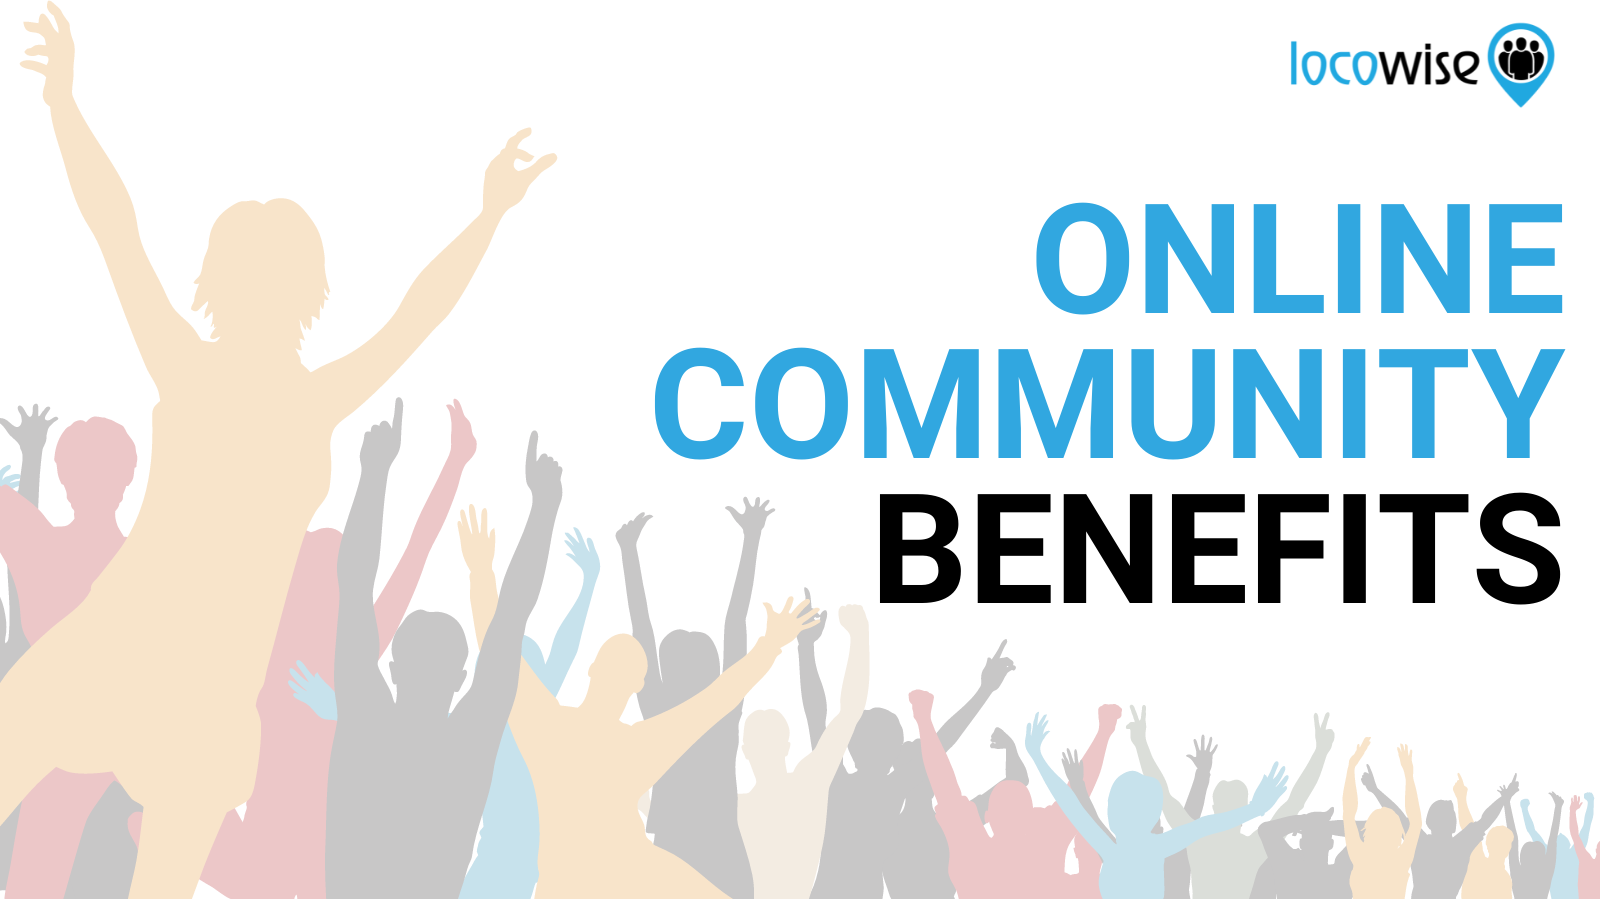 Online Communities: What Do They Mean For Your Brand?